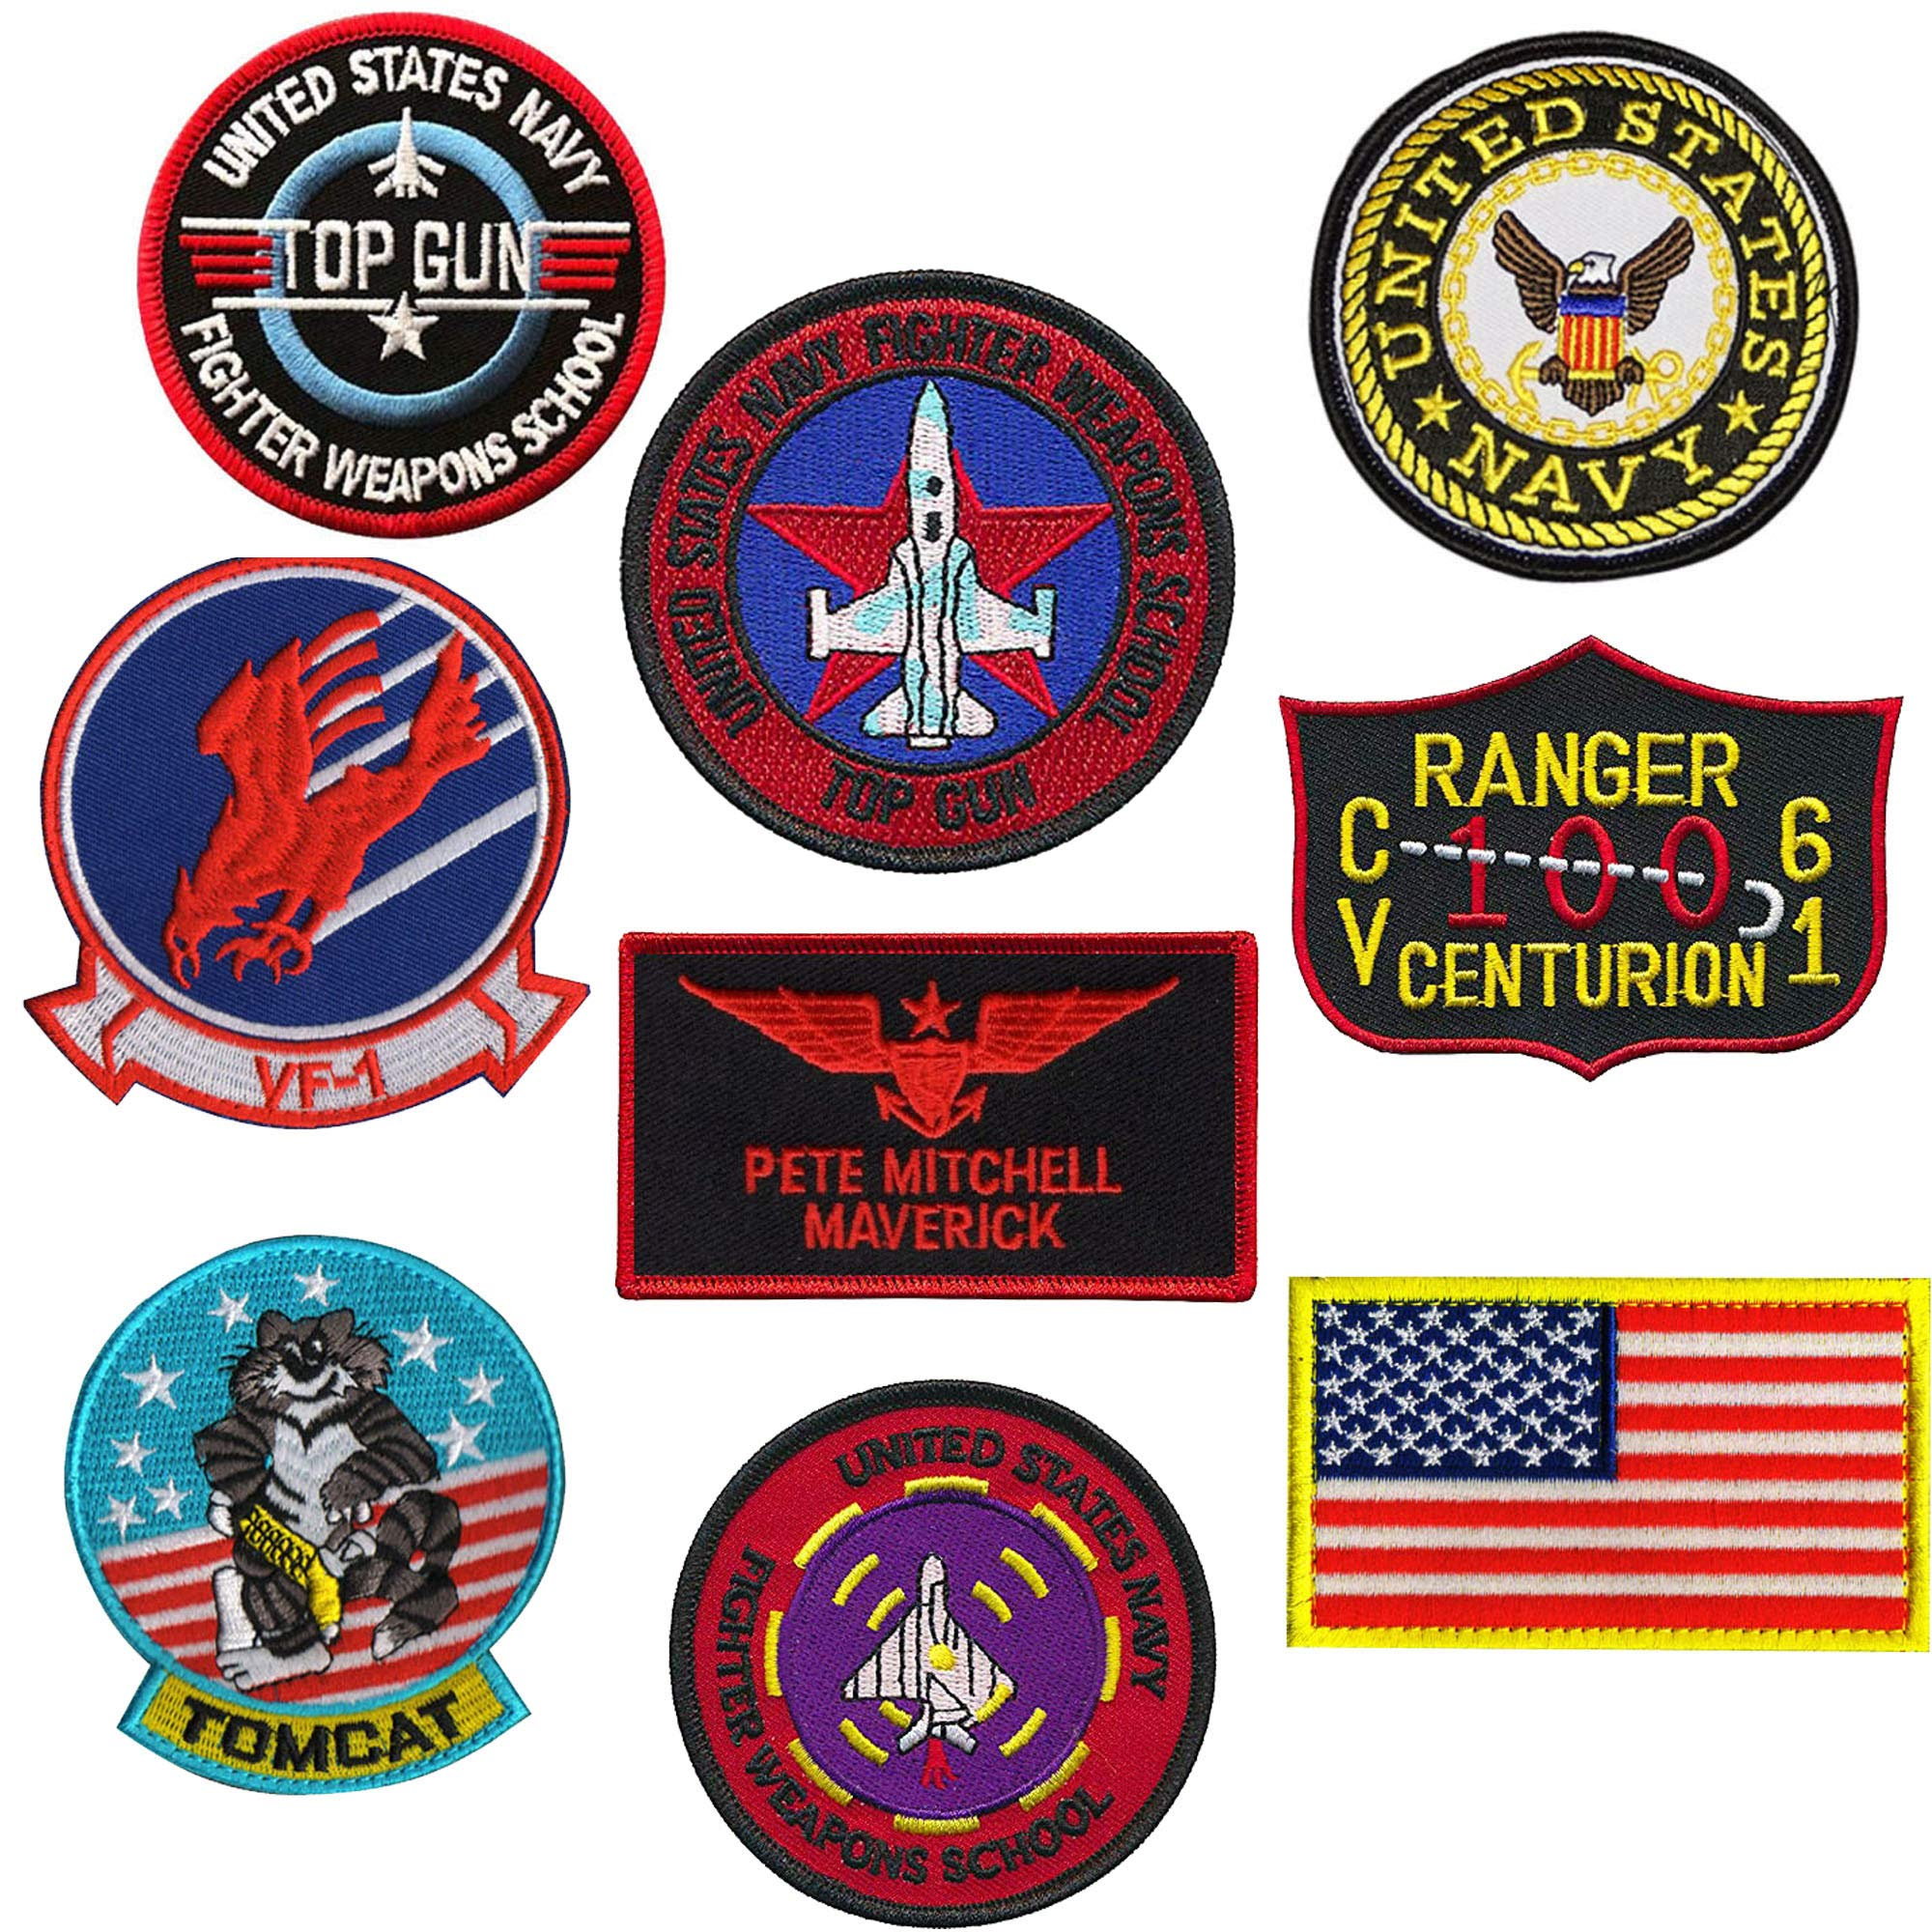 Top Gun Patch Set United Sates Navy Fighter Weapons School, American Flag, CV-61 USS Ranger 100 Centurion, Tom Cat, Pete Mitchell Maverick, VF-1 Embroidered Morale Patch Hook Loop Backing 9PCS by ODSP